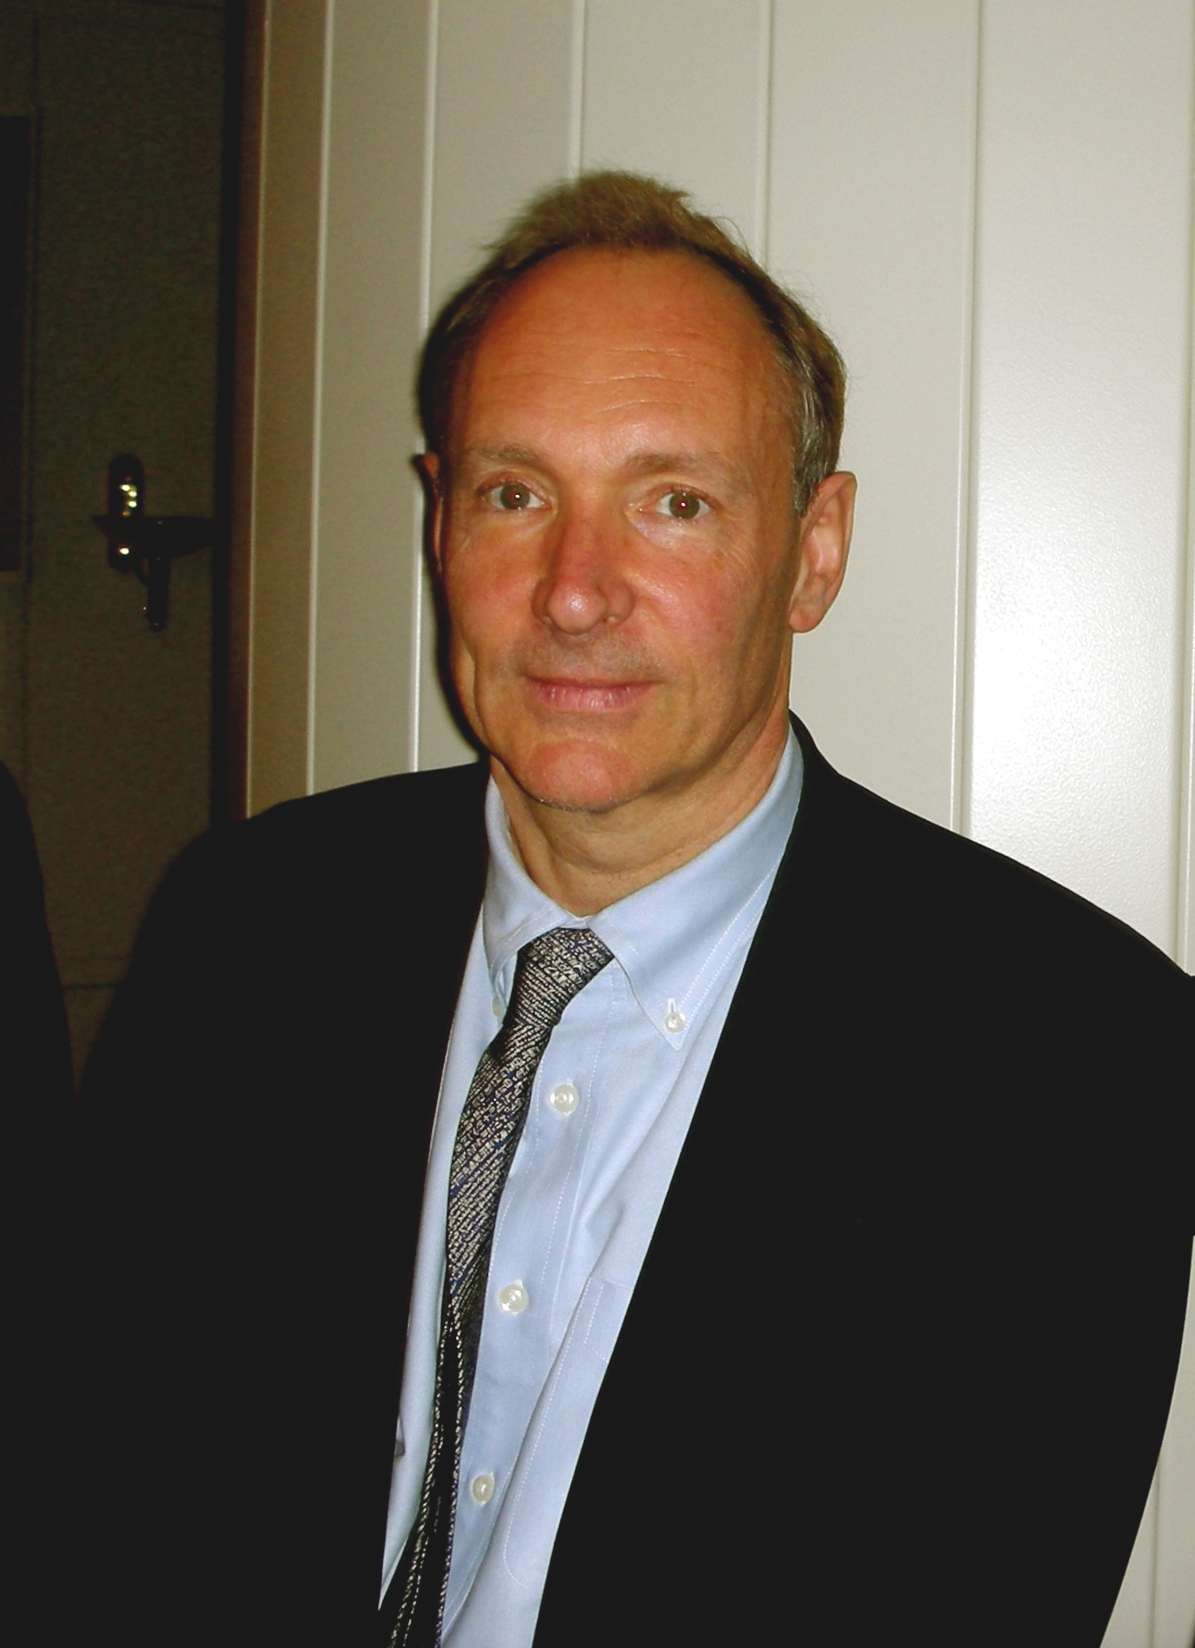 Tim Berners-Lee, wikipedia photo